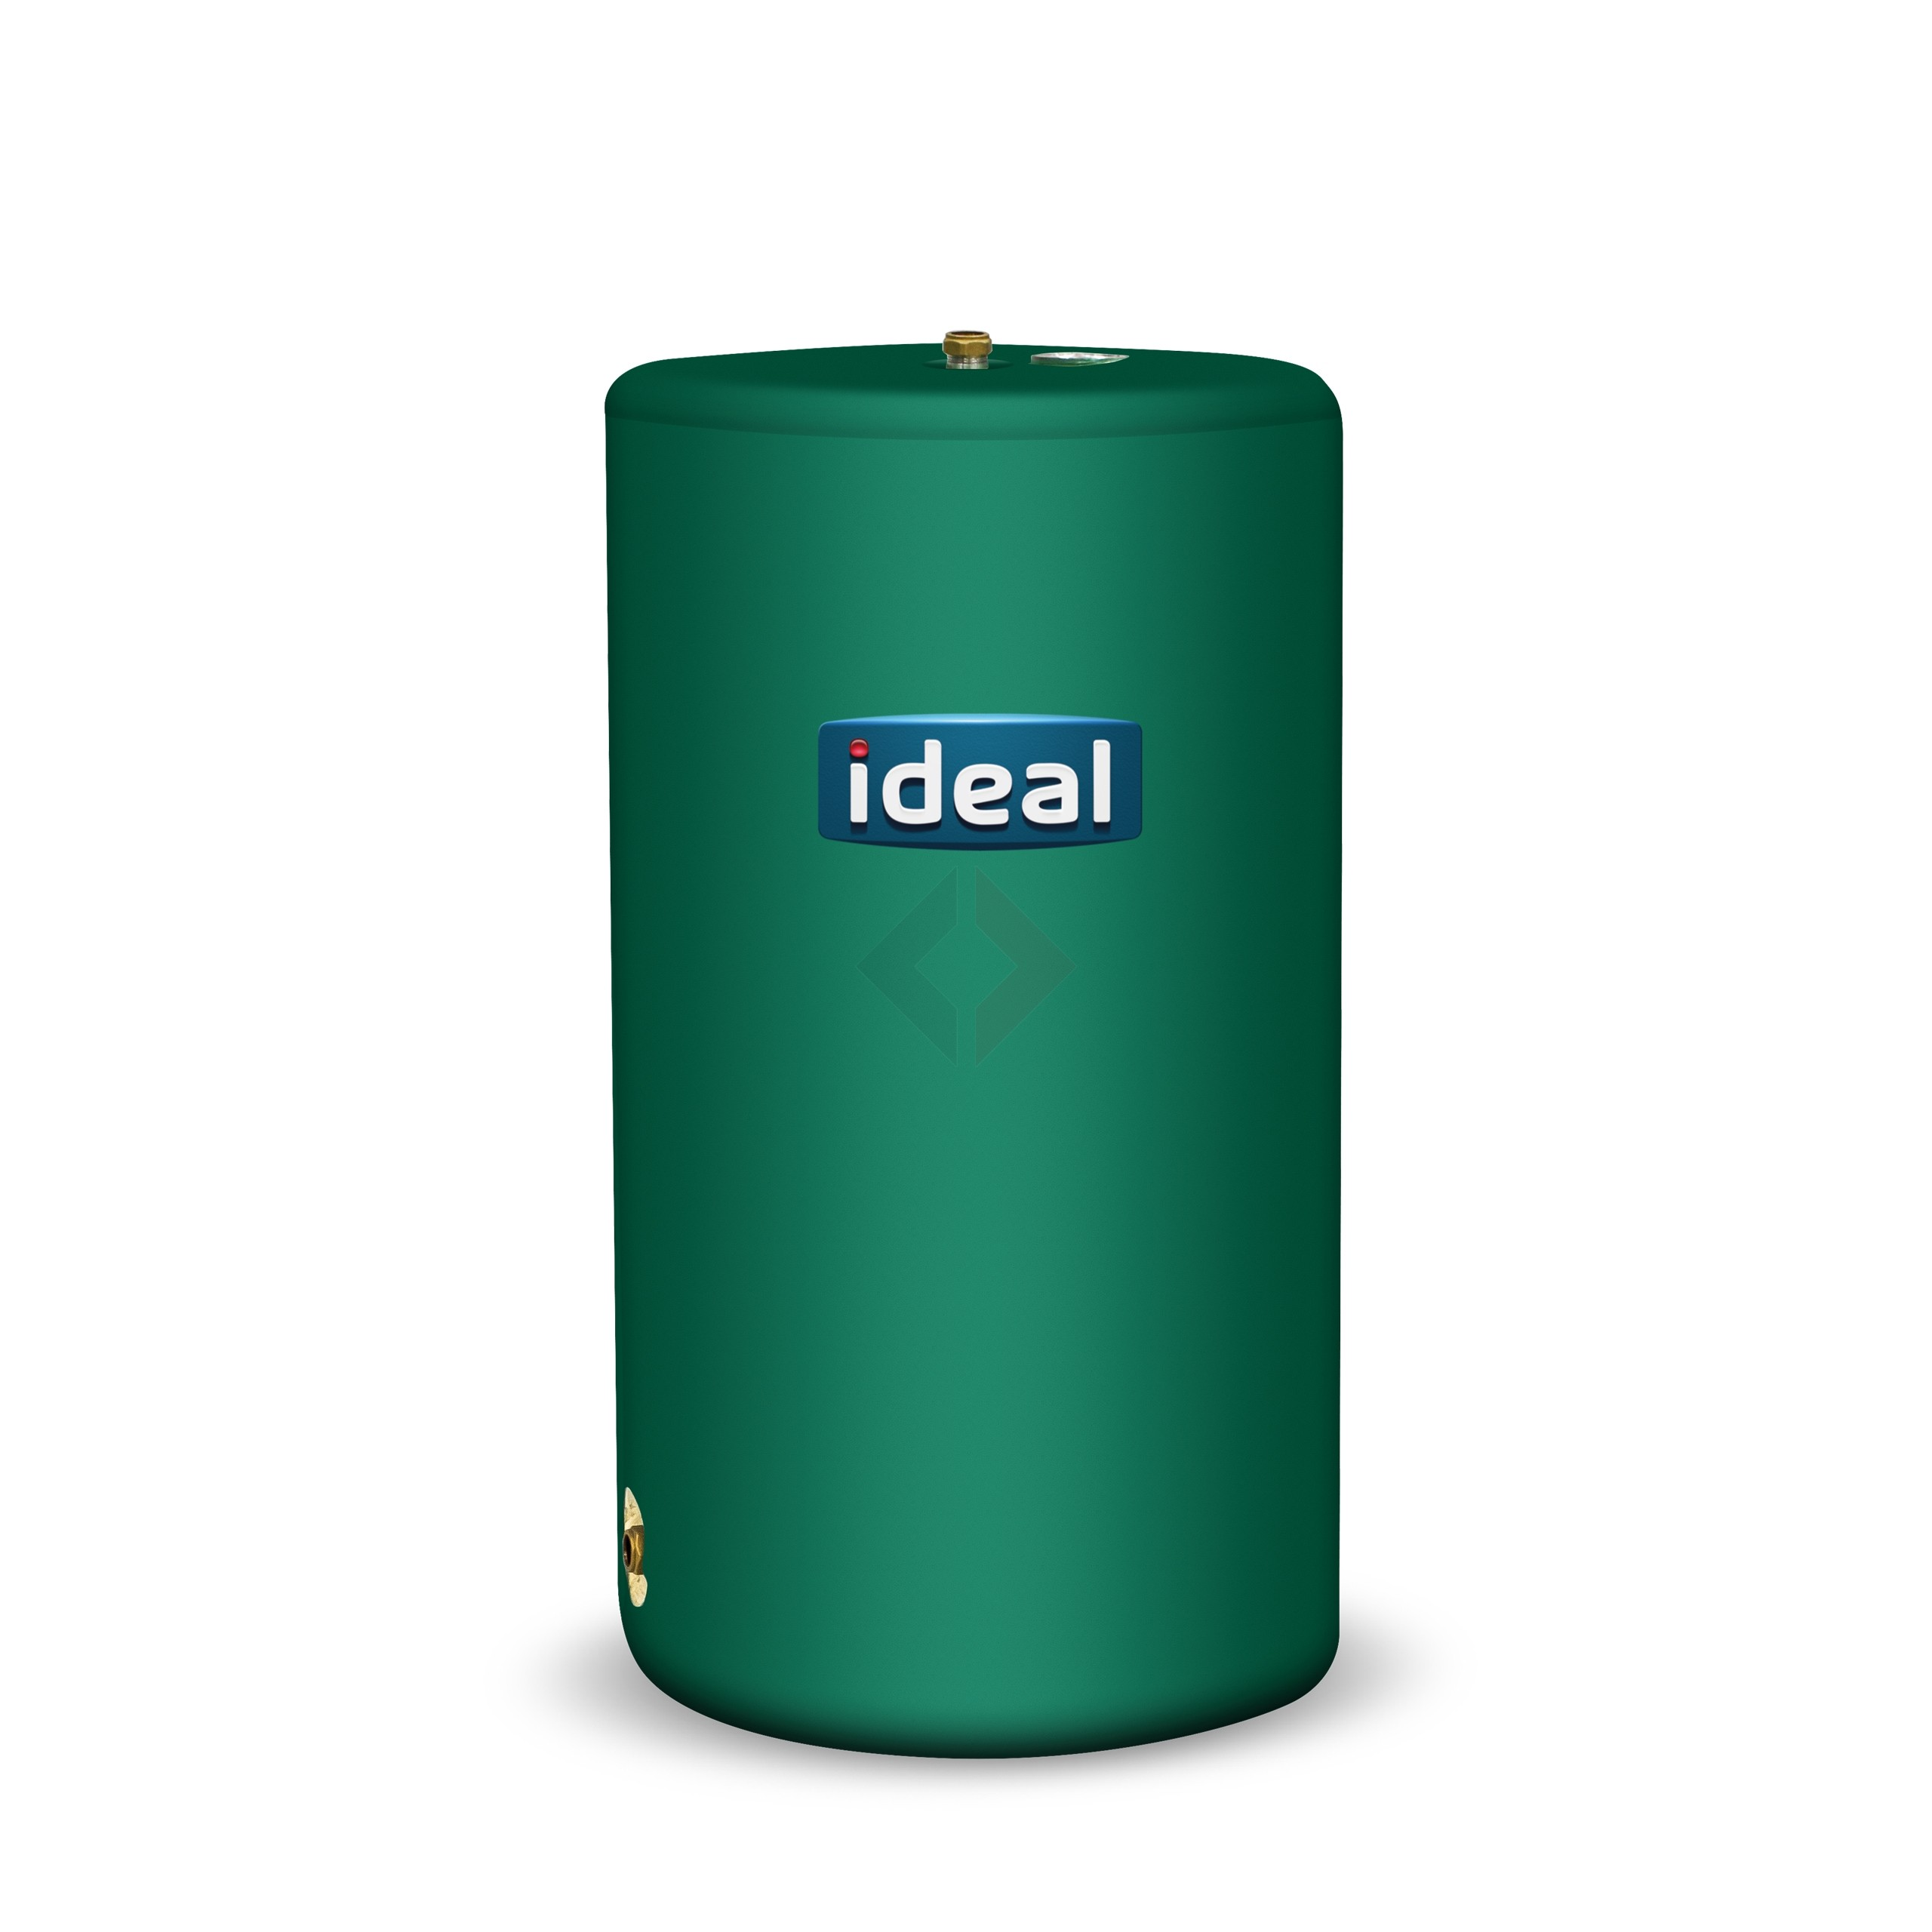 Ideal 1050 x 400 Indirect Stainless Steel Vented Cylinder, Easy Pack